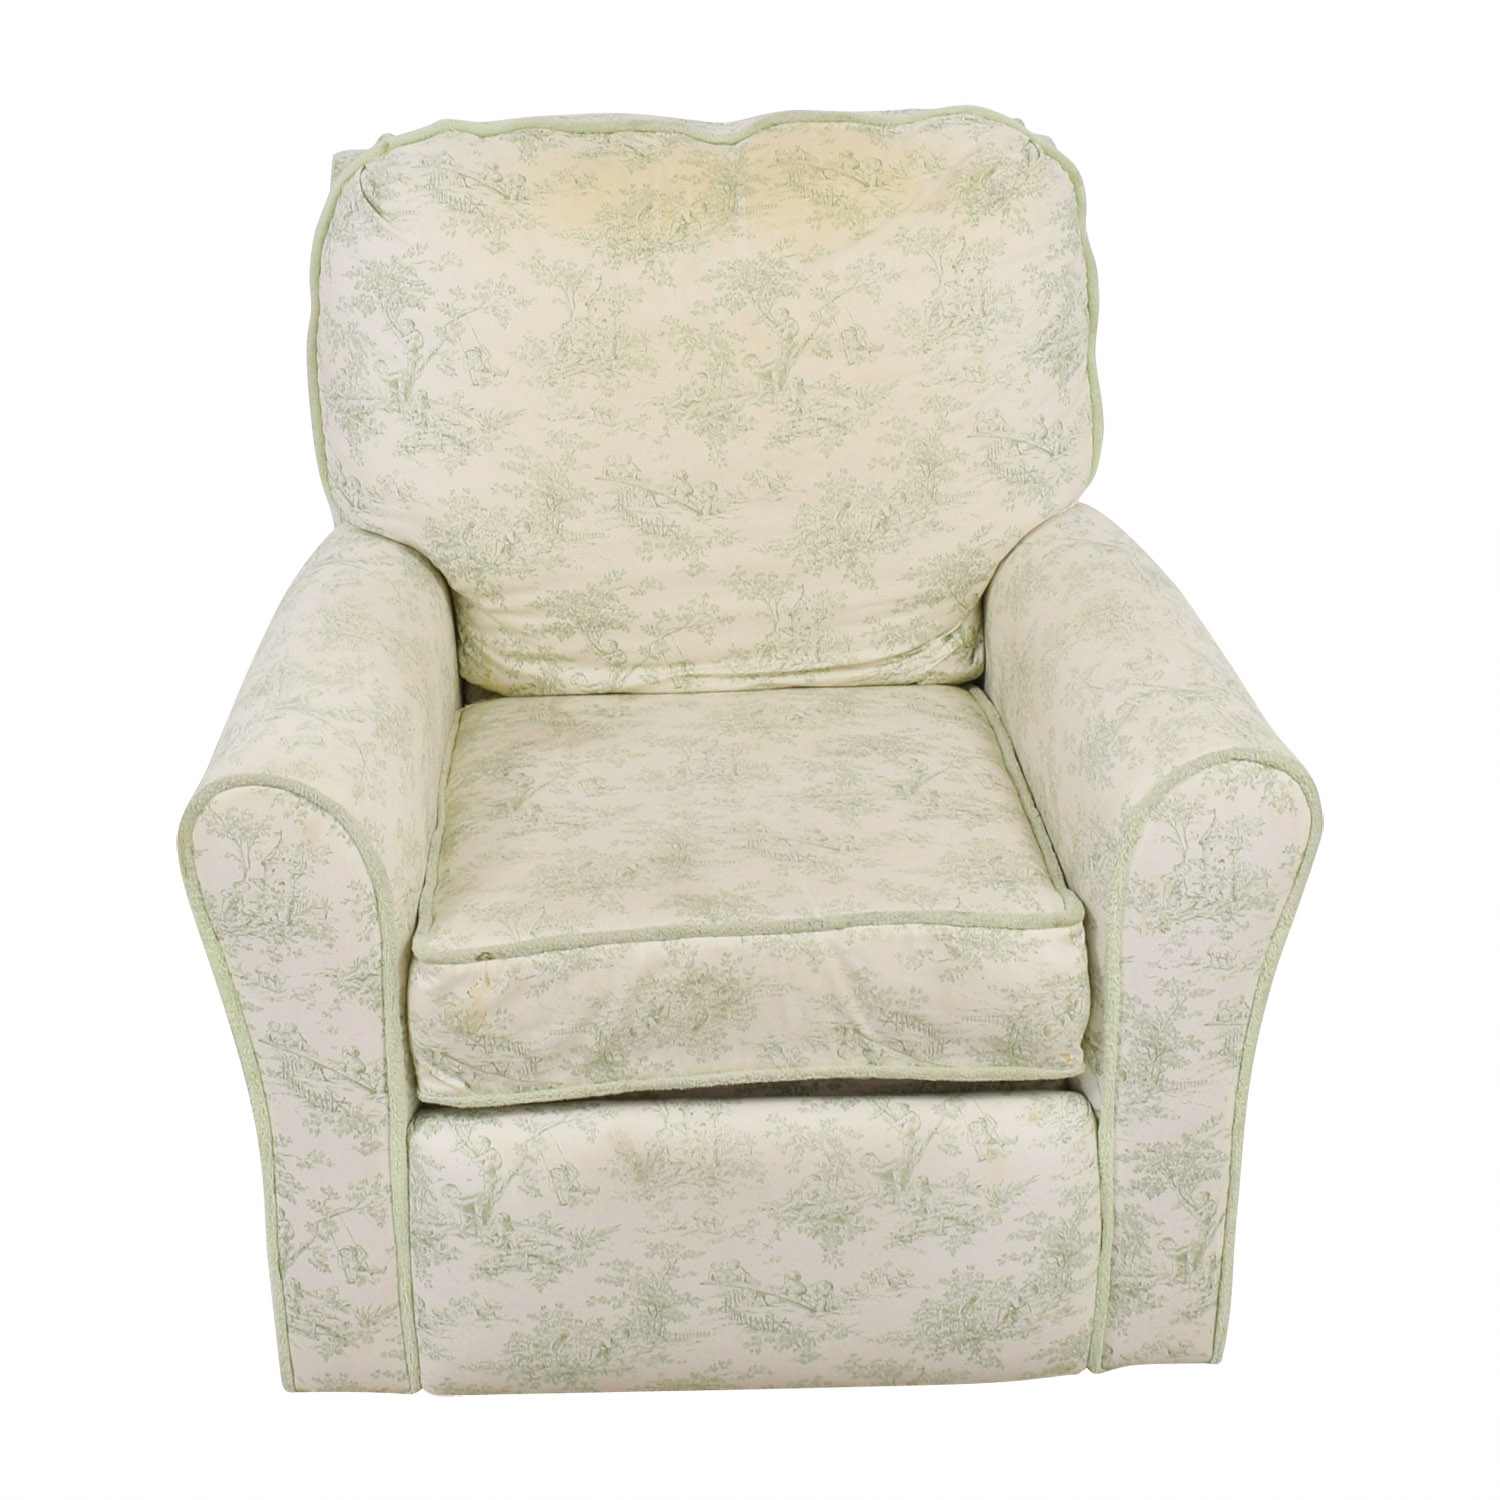 Bellini Baby Children's Playground White and Green Rocking Chair Recliner / Accent Chairs